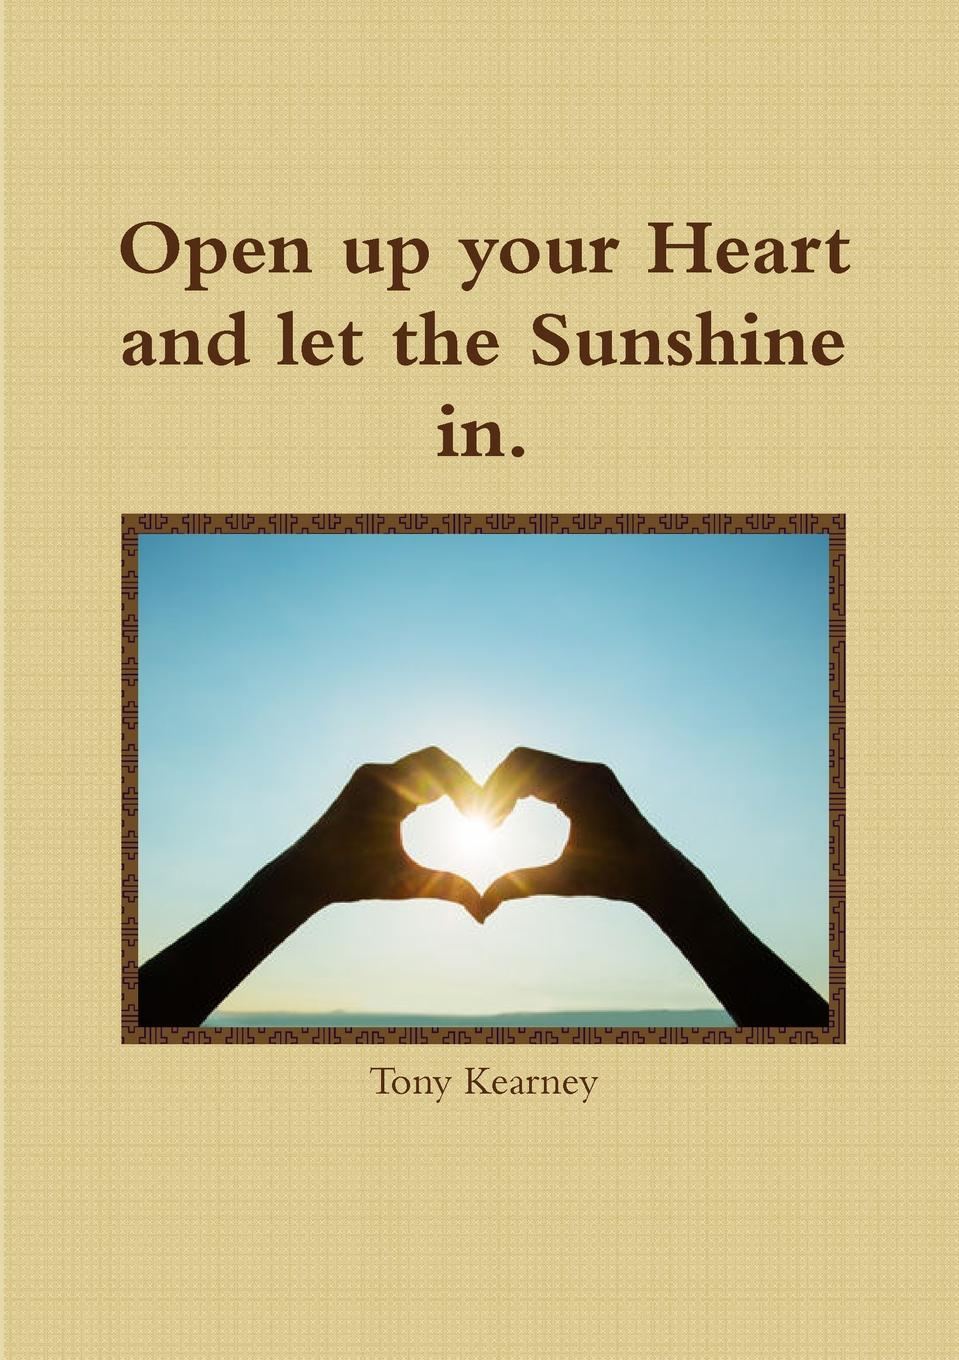 Tony Kearney Open up your Heart and let the Sunshine in. jd mcpherson jd mcpherson let the good times roll